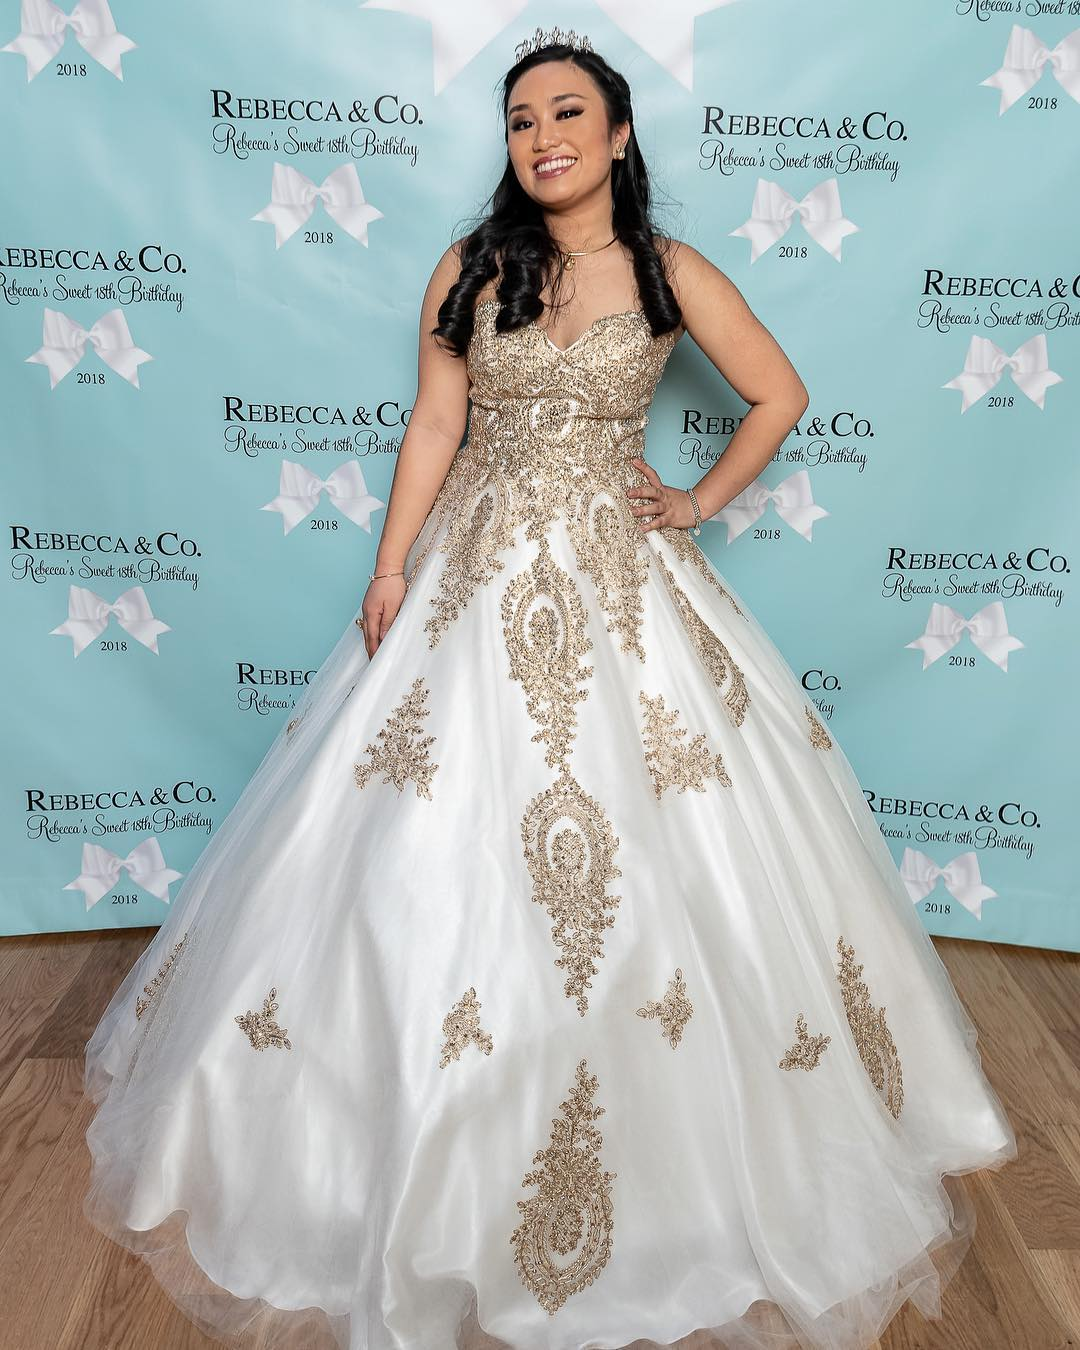 503effc421 Lace Quinceanera Dresses White Ball Gown Sweet 15 Dresses from MychicDress